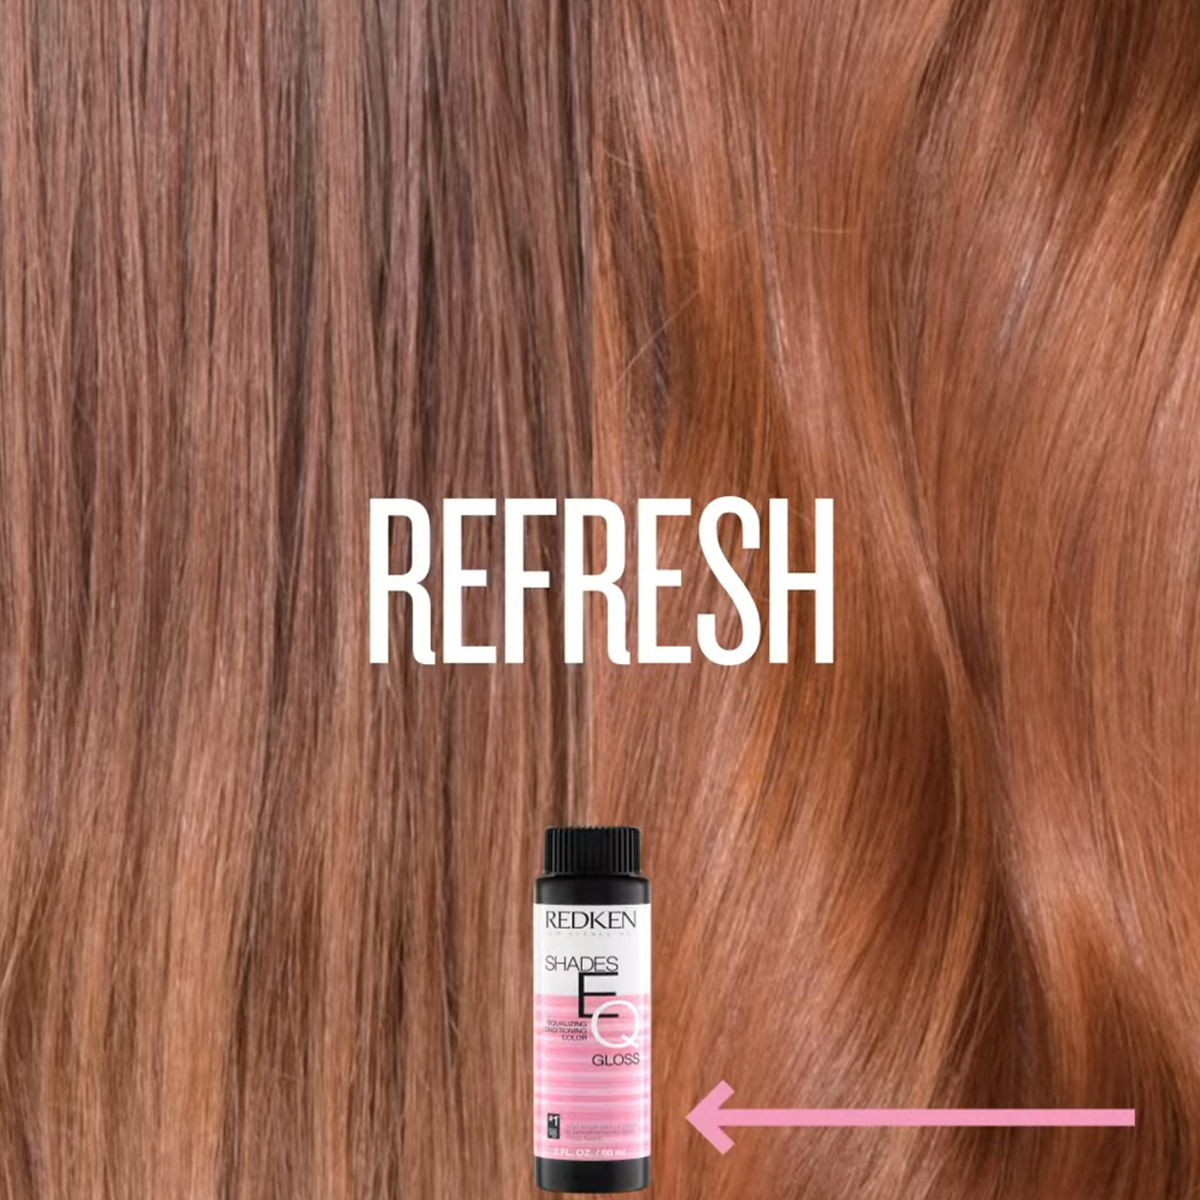 Redken ShadeE - Refresh